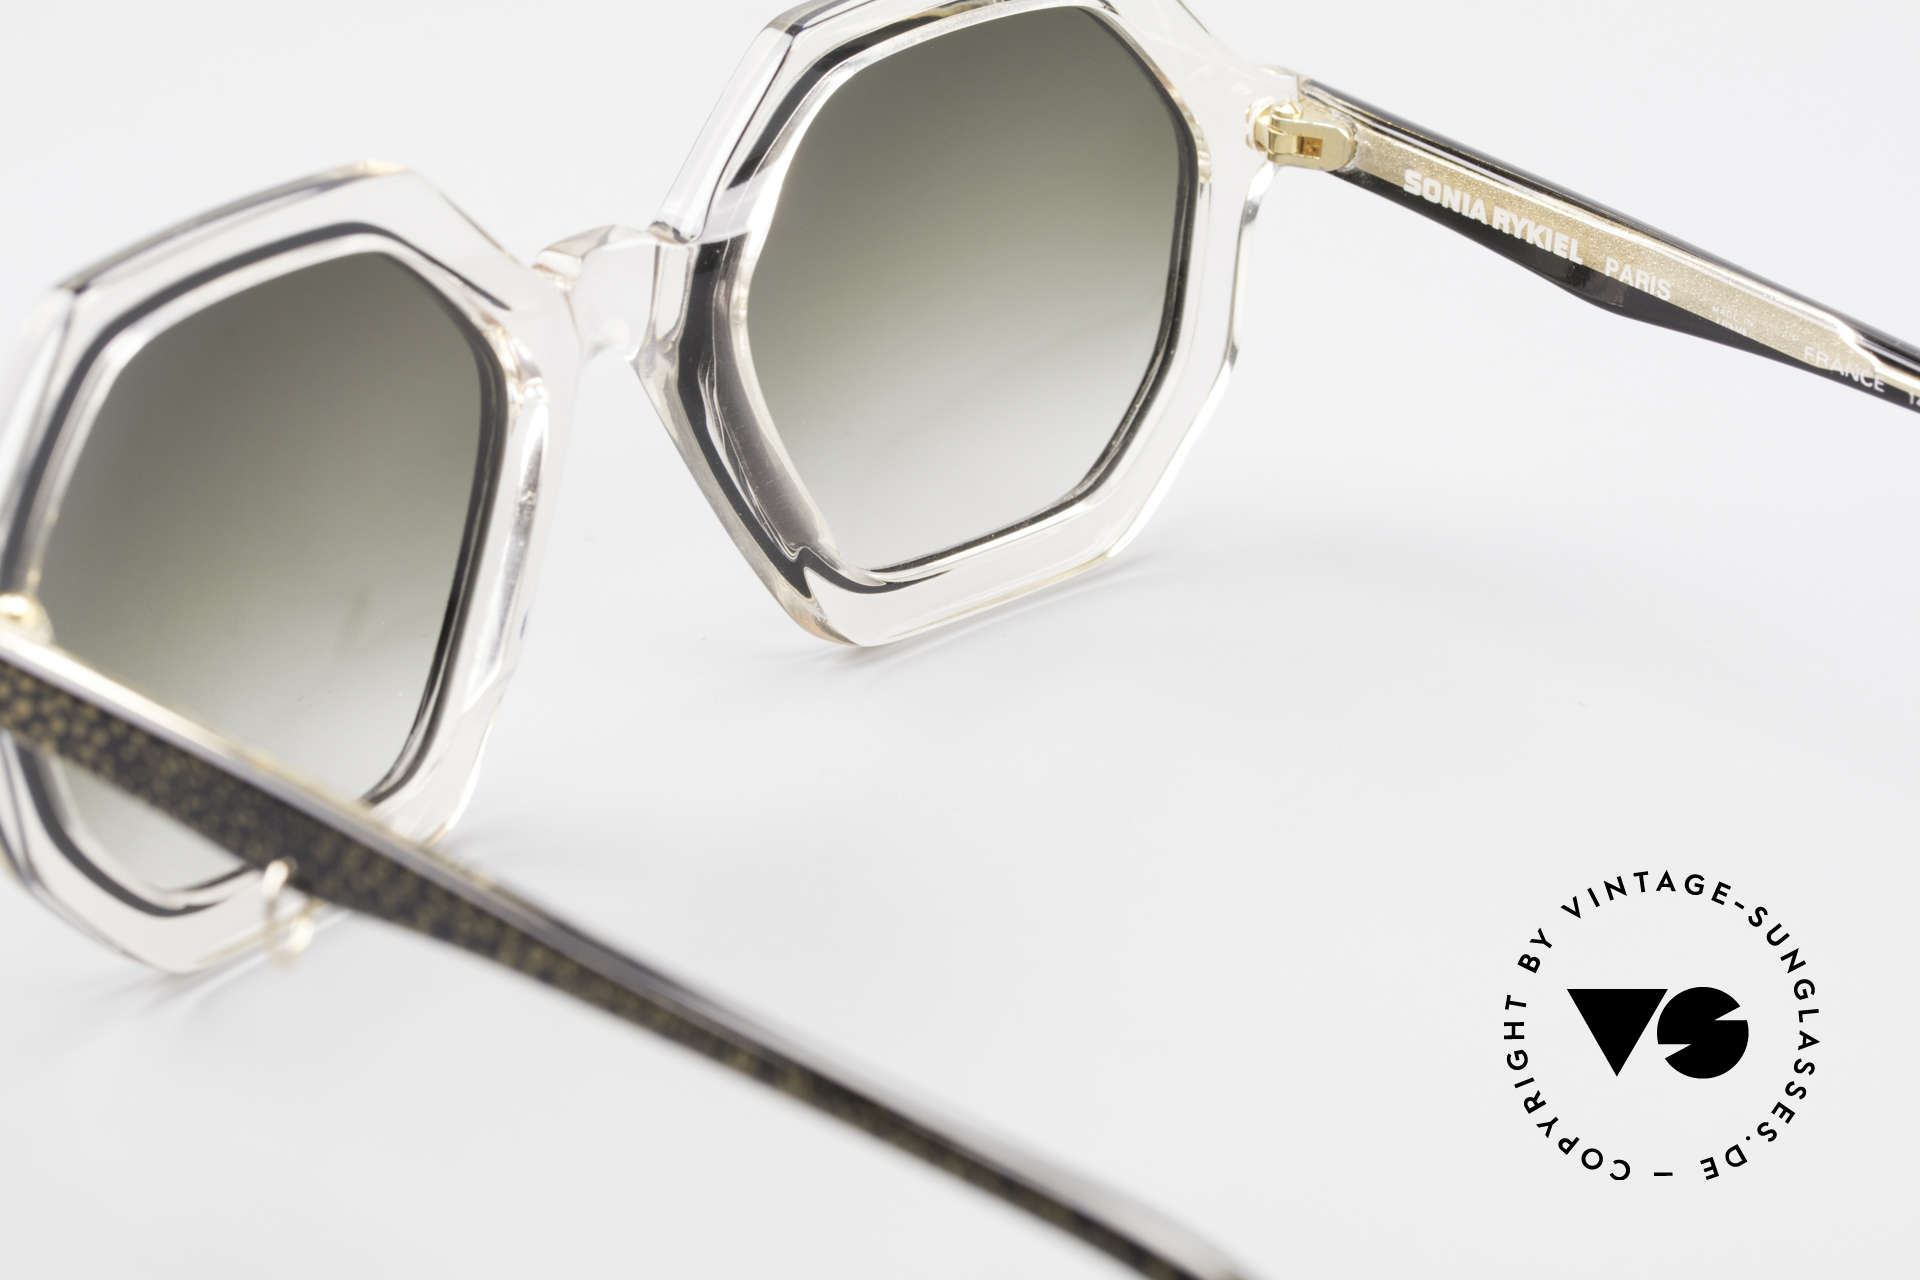 Sonia Rykiel SR46 727 70's Octagonal Sunglasses, sun lenses (100% UV) can be replaced with prescriptions, Made for Women